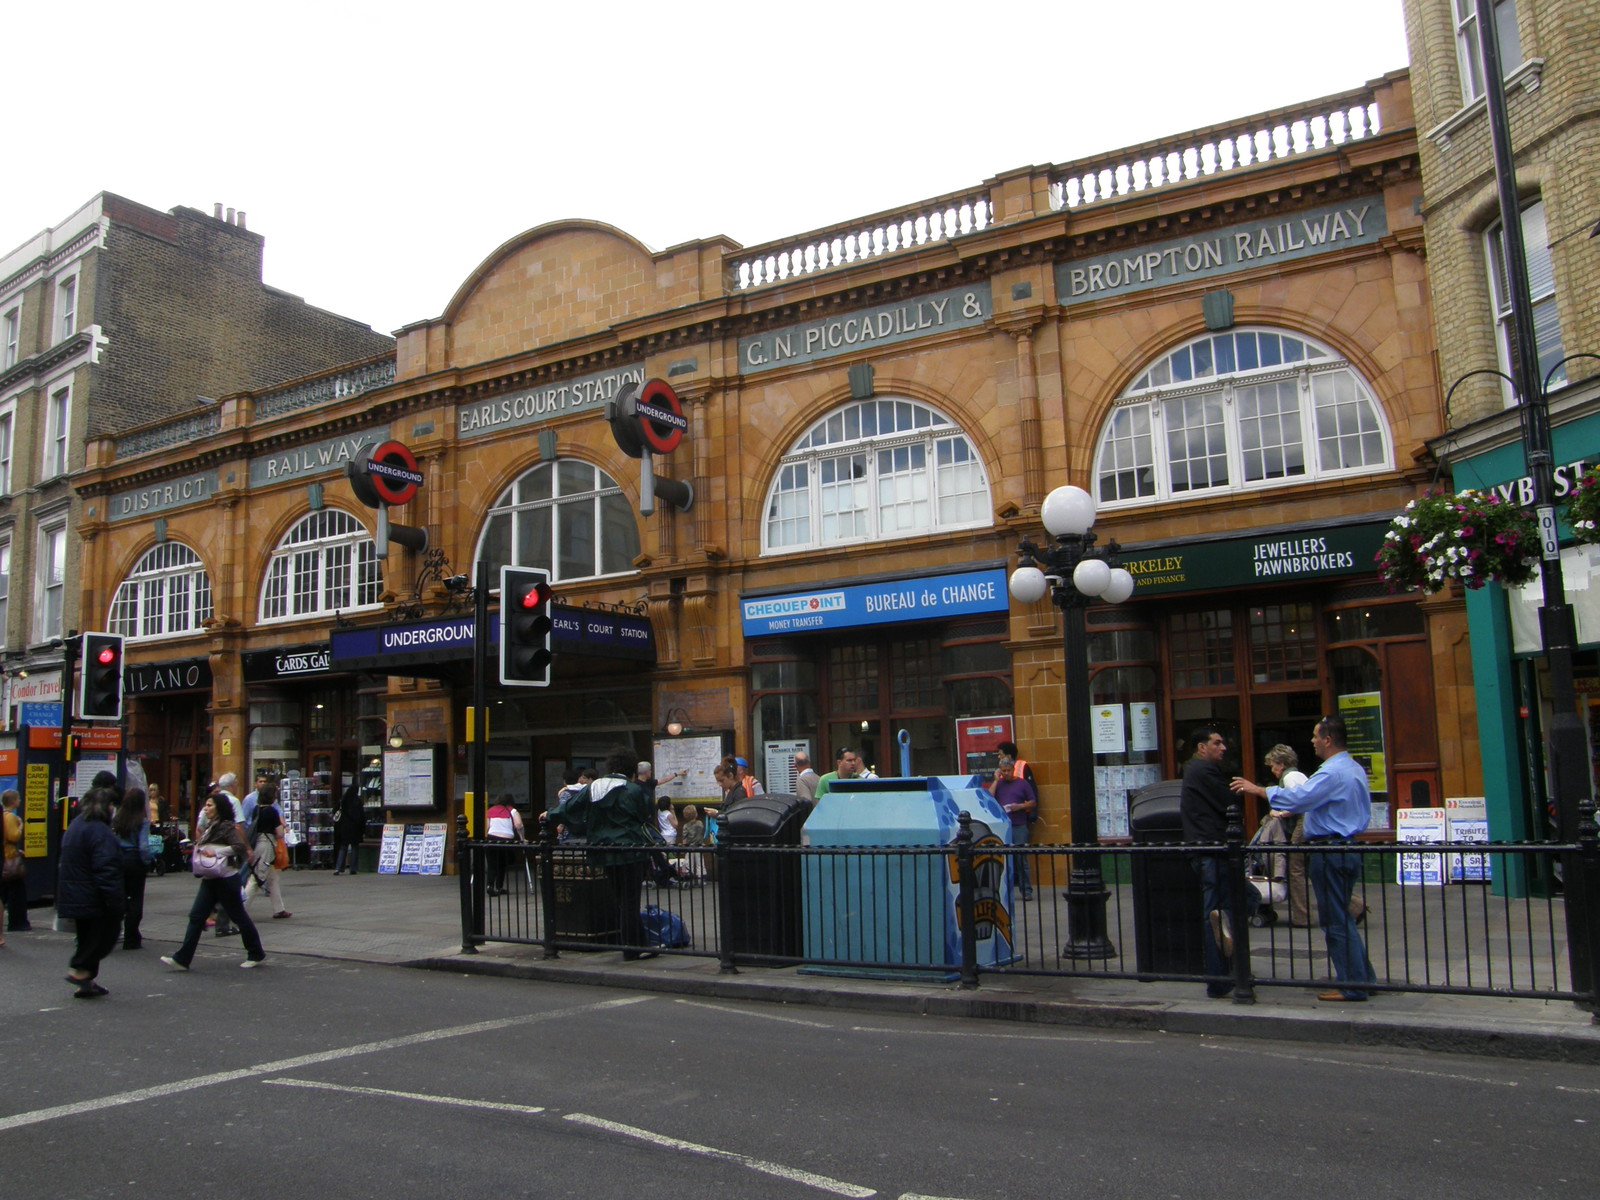 Earl's Court station